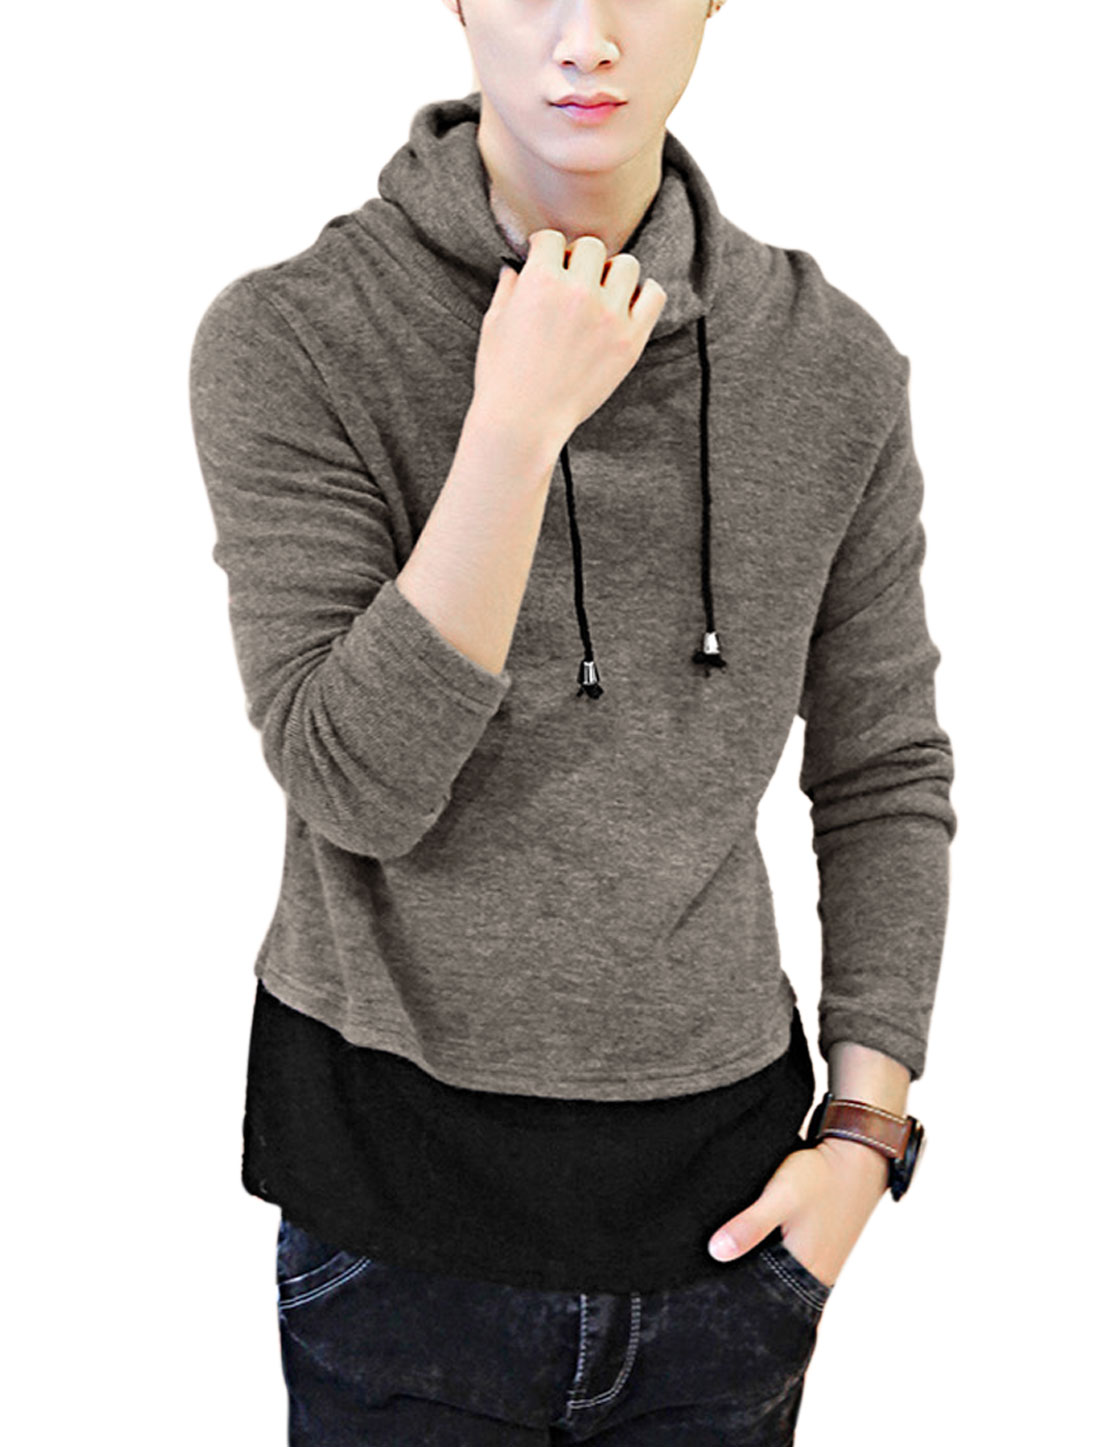 Men Cowl Neck Drawstring Colorblock Casual Knit Top Dark Beige M